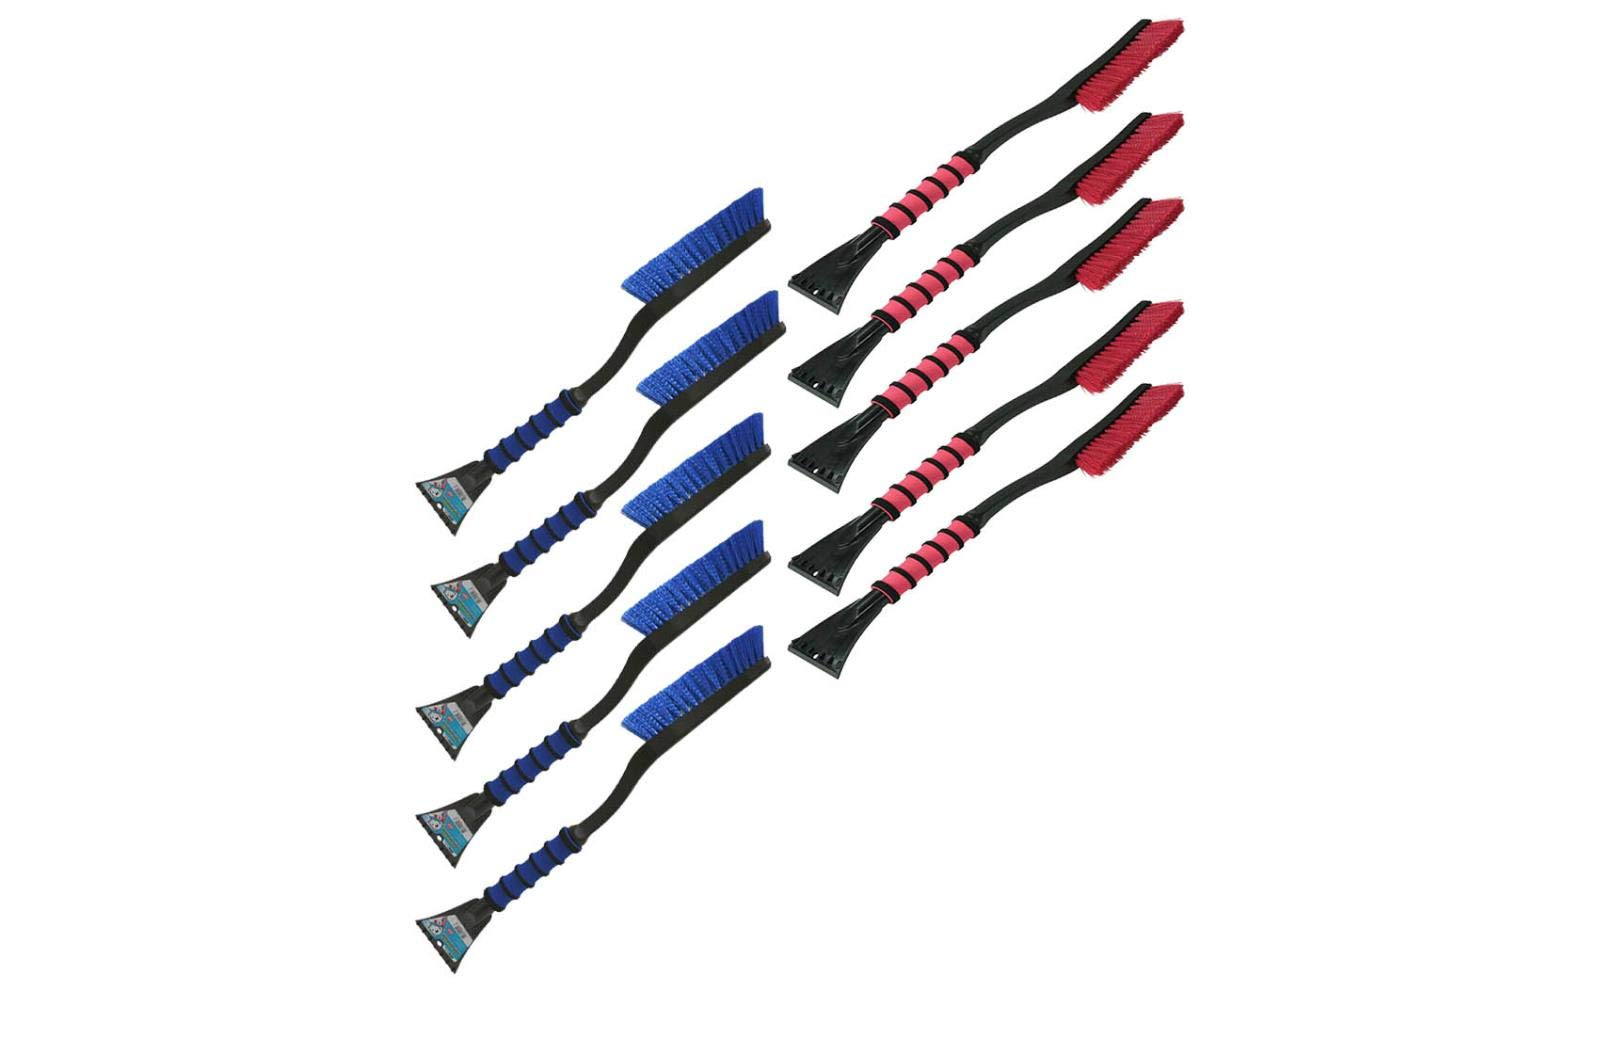 Nissan Hopkins 532 Mallory 26'' Cool Tool Snow Brush-10 Pack (Colors May Vary)